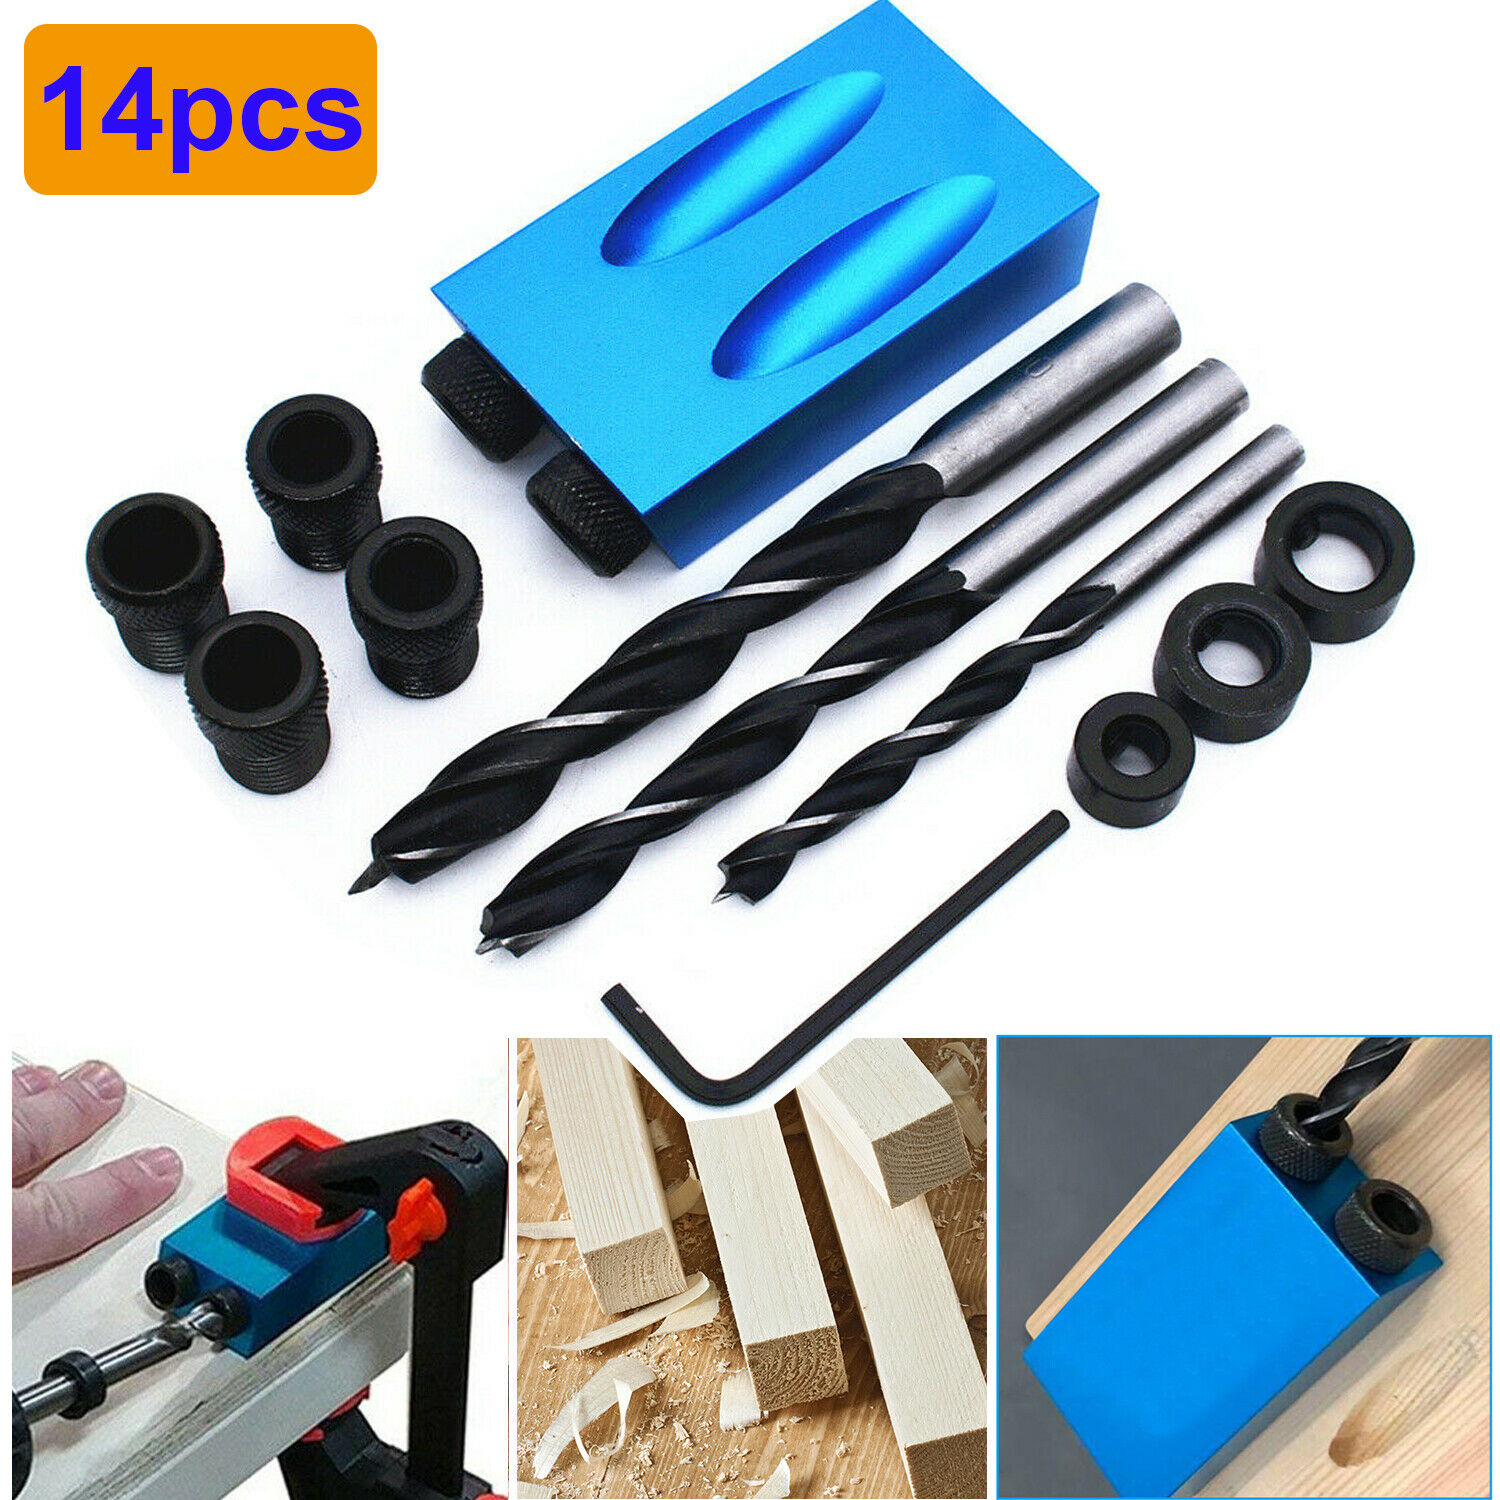 14PCS 14Pcs Pocket Hole Jig,Pocket Hole Screw Jig,15 Degree Dowel Drill Bit Kit,6//8//10mm Drive Adapter for Woodworking Angle Drilling Holes,Carpenters Woodwork Guides Joint Angle Carpentry Locator